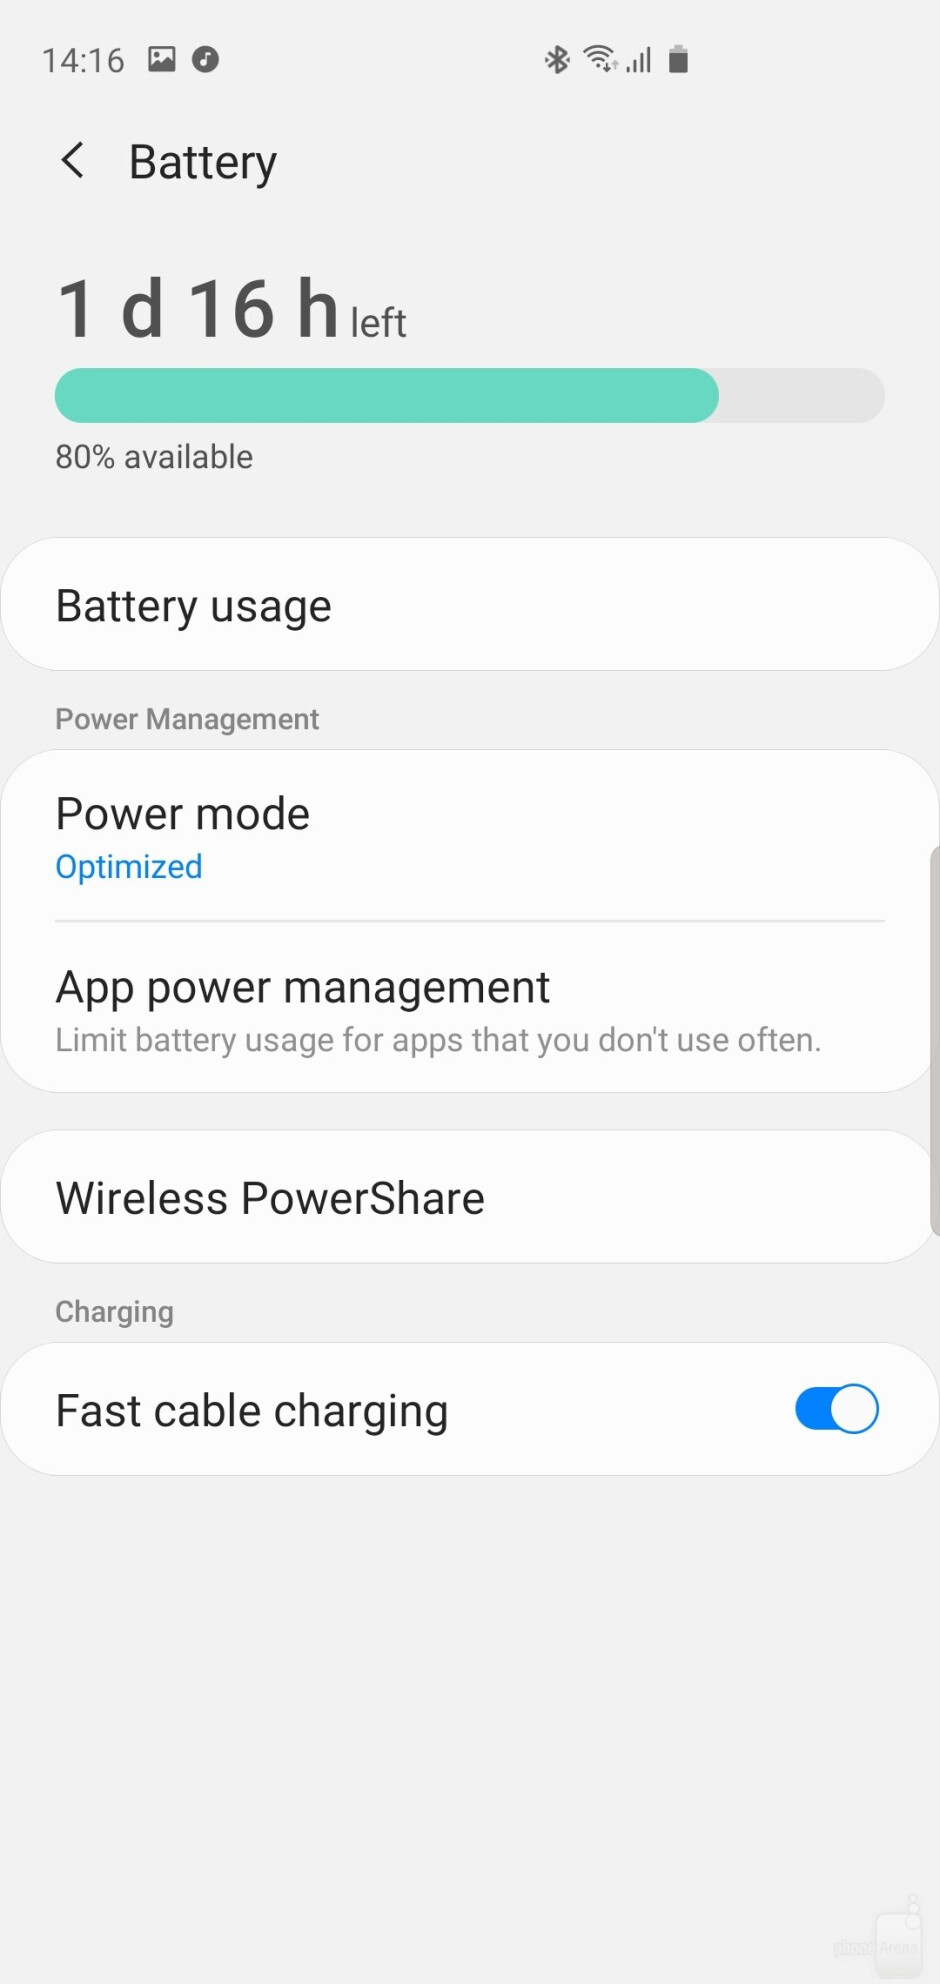 Device Care & battery stats in One UI 2.0 - Android 10 with One UI 2.0 on the Samsung Galaxy S10+: Hands-on with all the new features